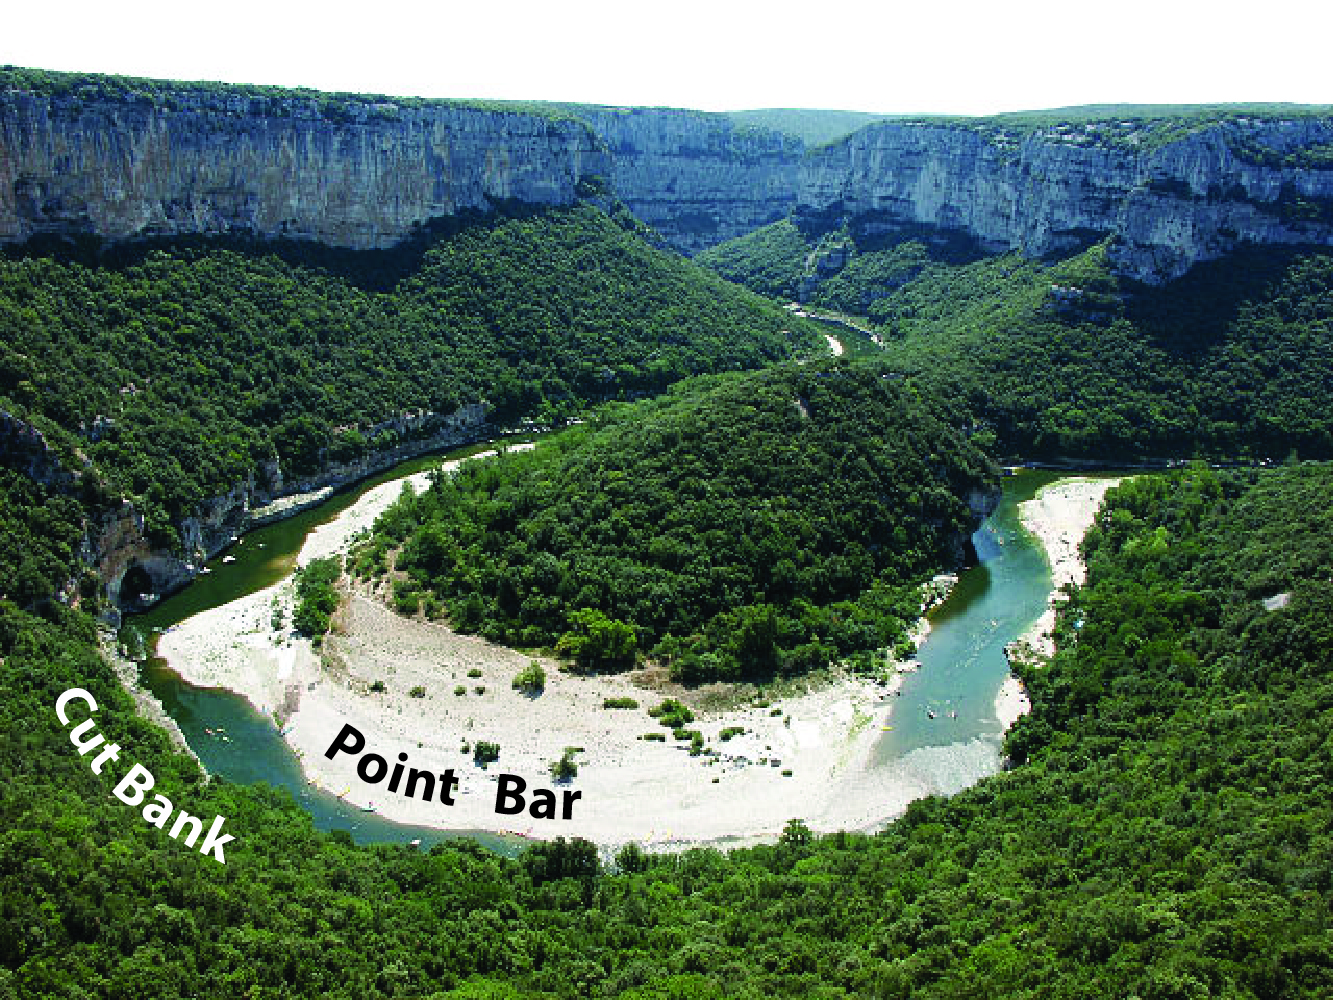 Sandy deposition at the inside of a bend (point bar) and erosion on the outside of the bend (cut bank) of a river in France.